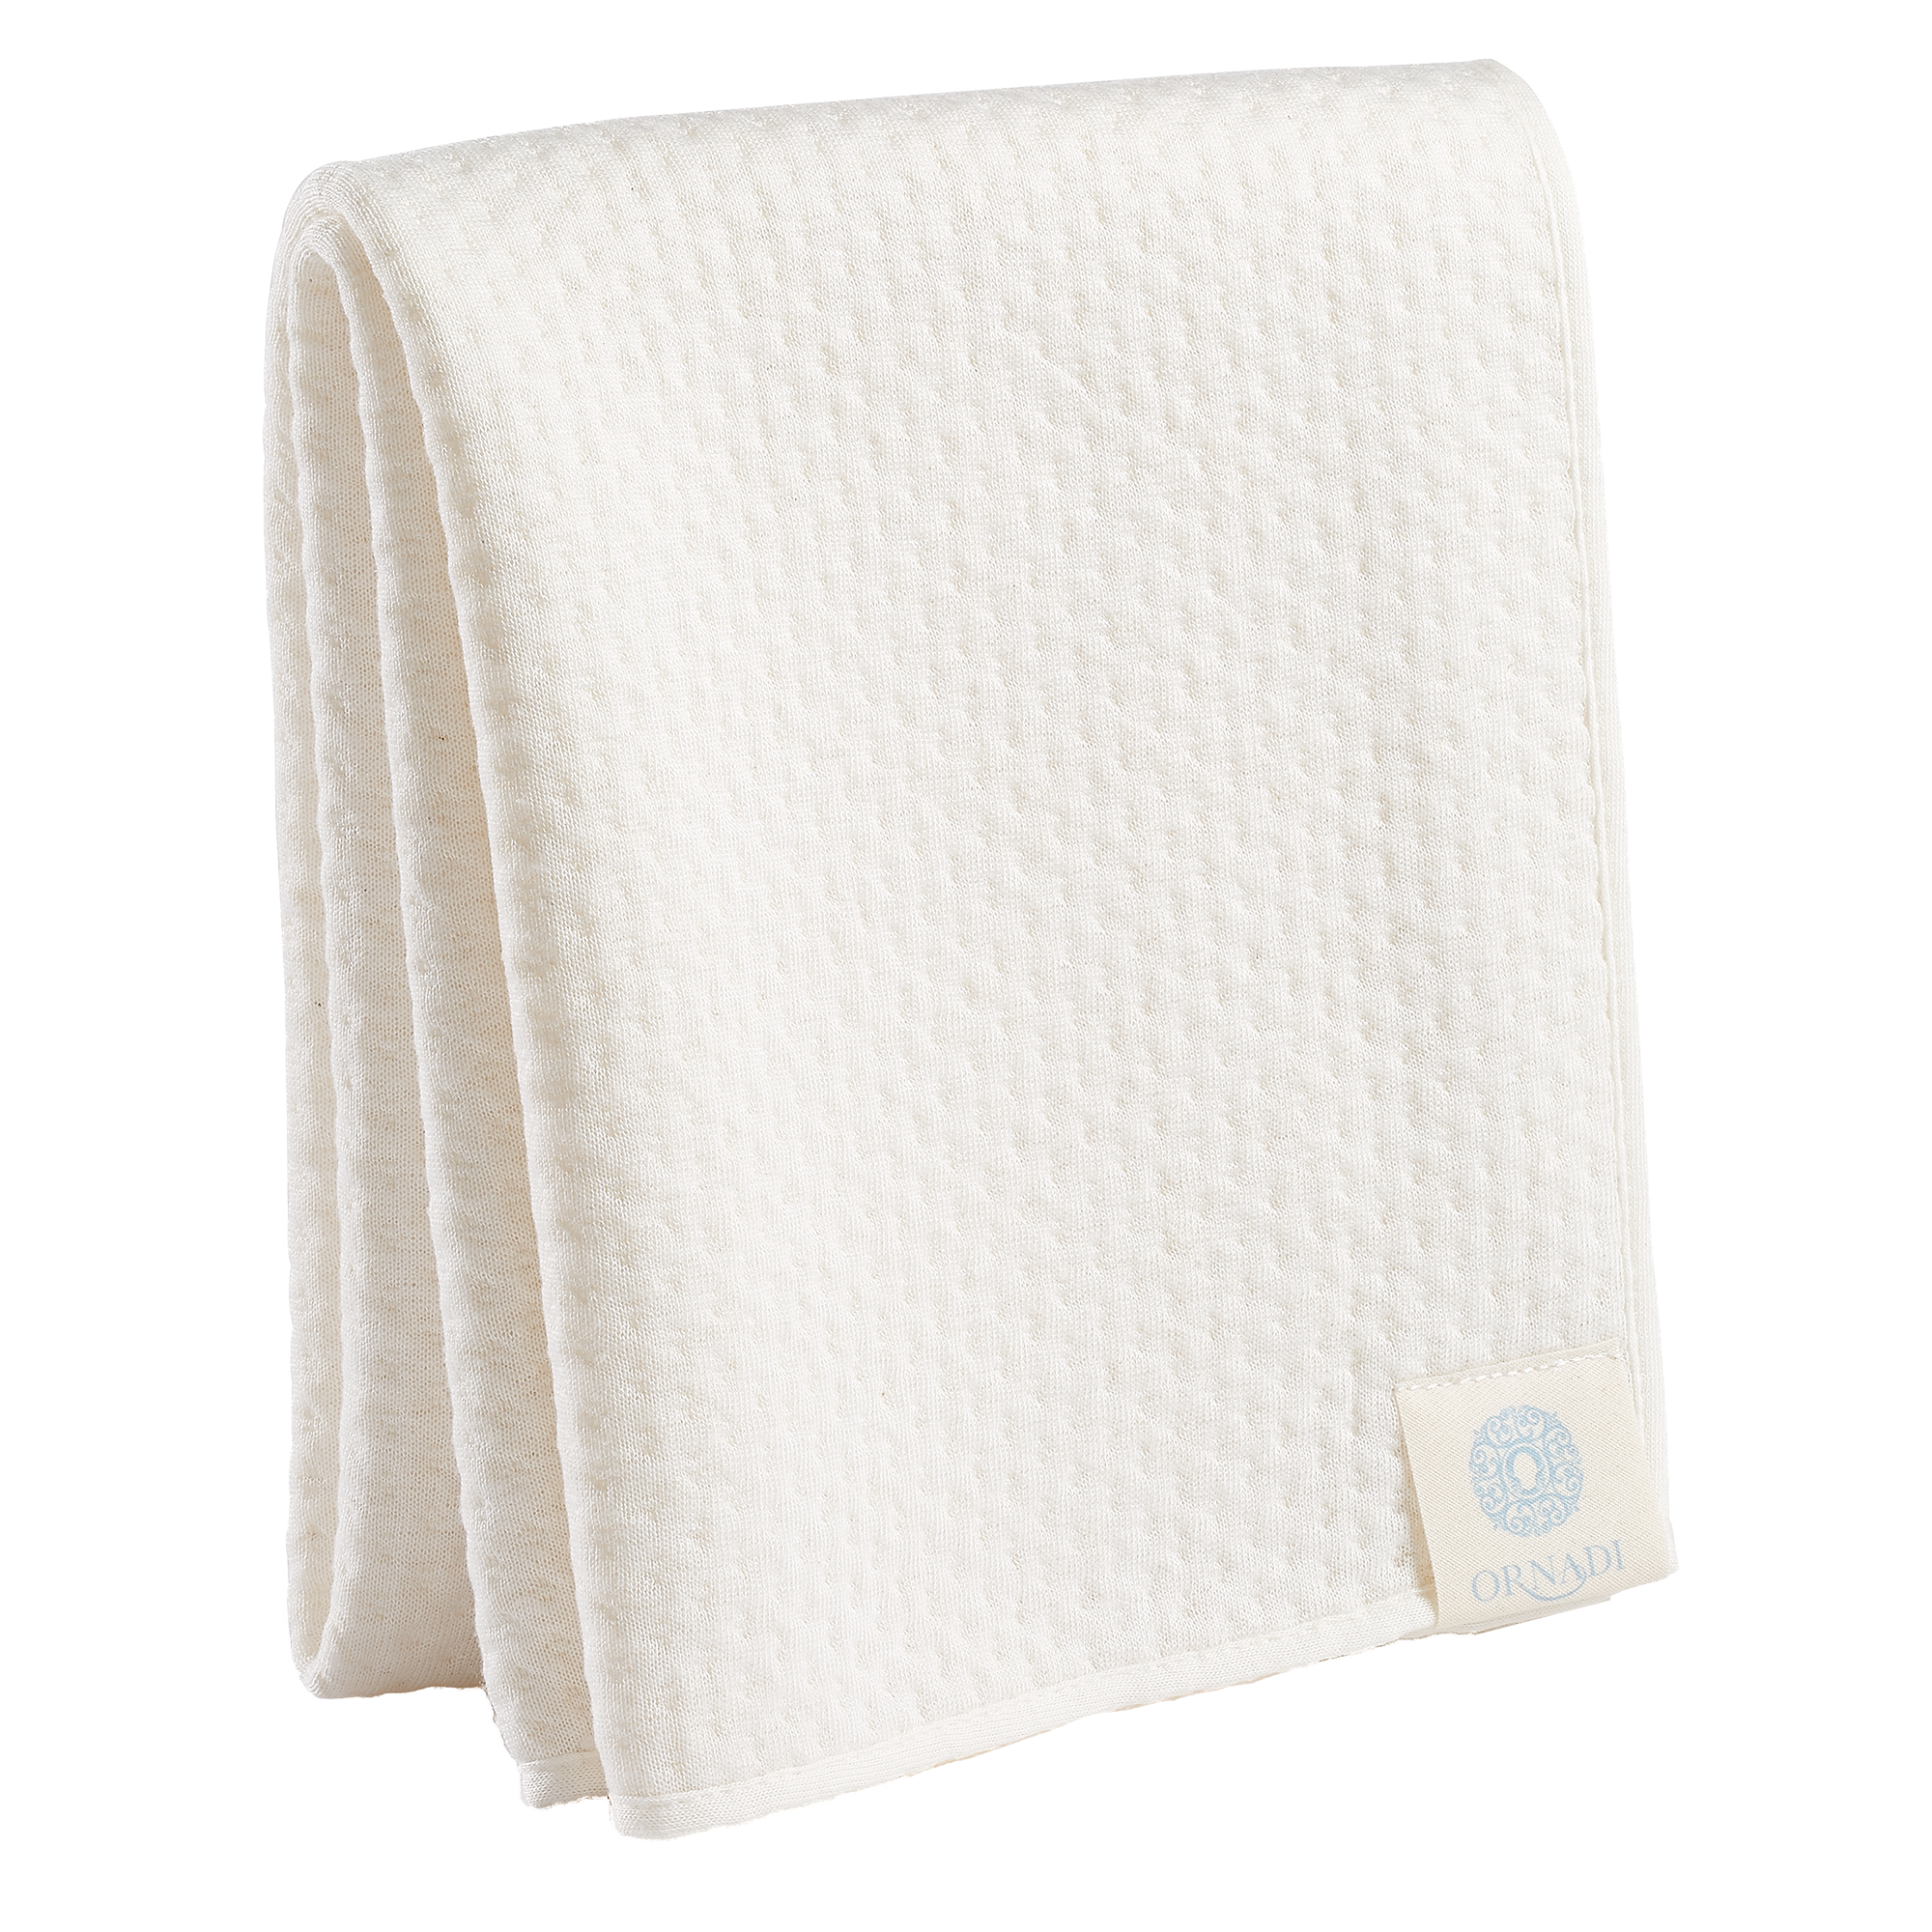 Towel transparent face. Bamboo organic cotton soft